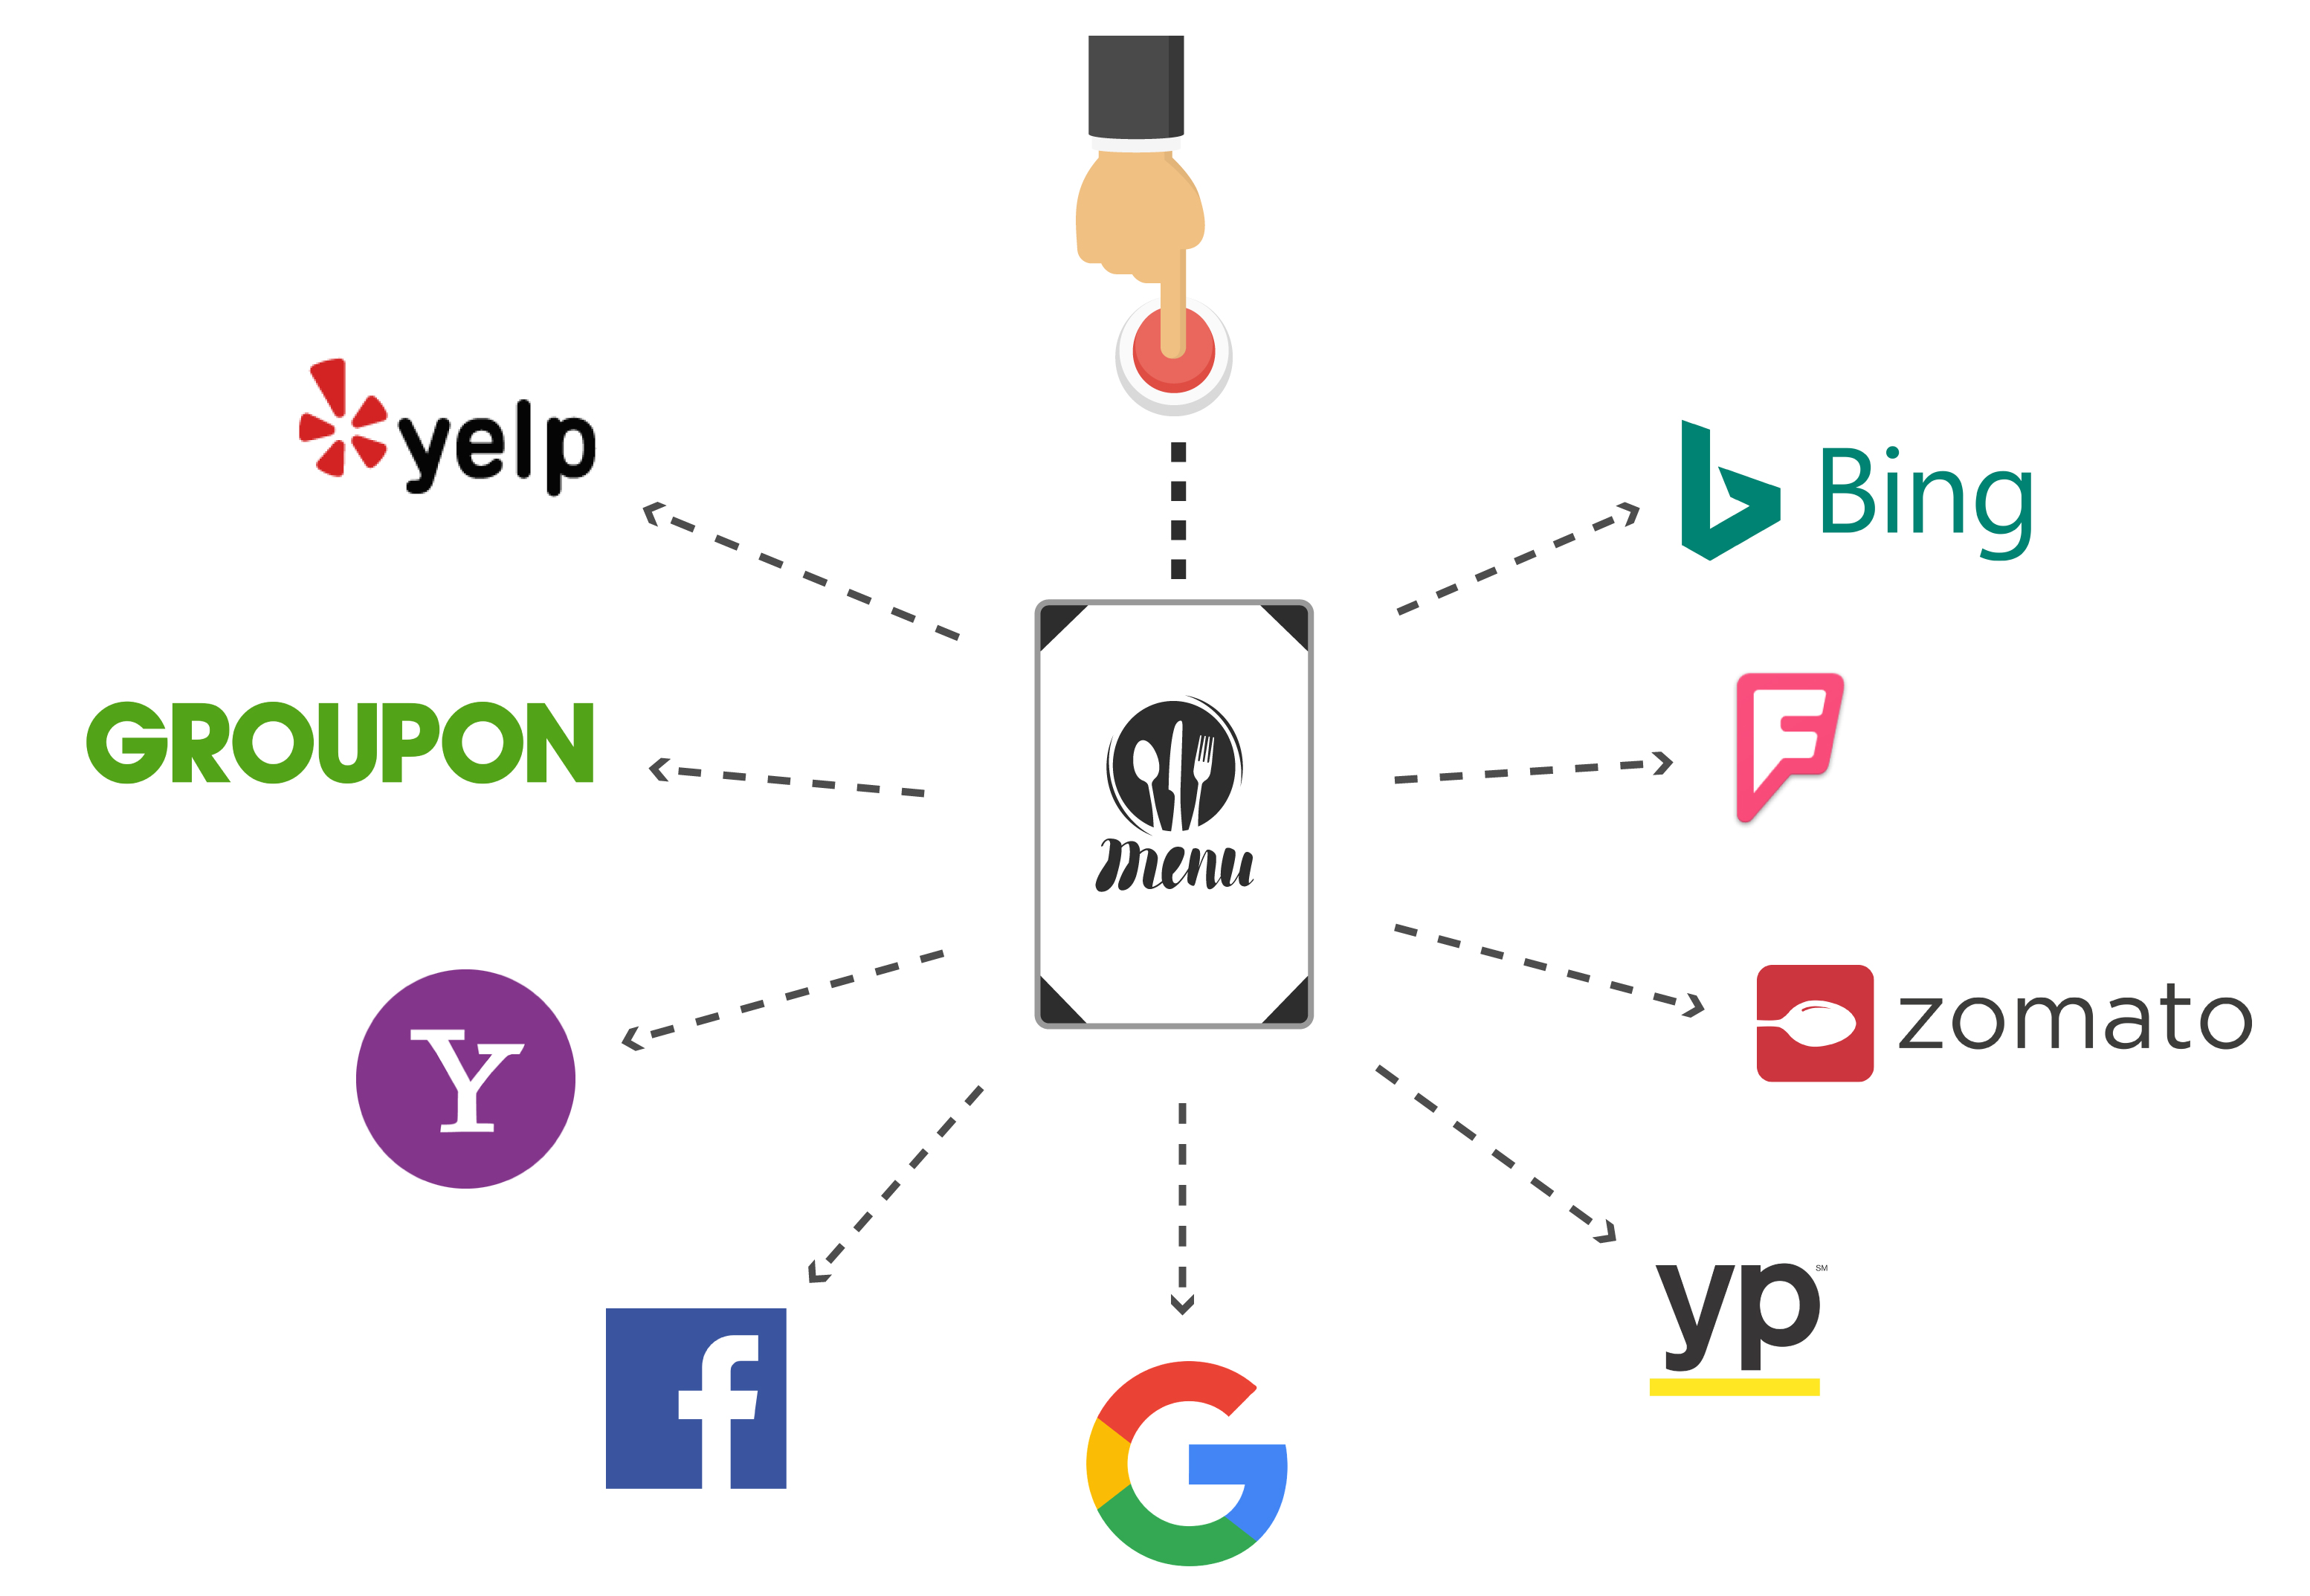 Illustrated graphic of person pressing button and pointing to Google, Facebook, Tripadvisor, Yelp, Foursquare, Yellowpages, Zomato, Groupon